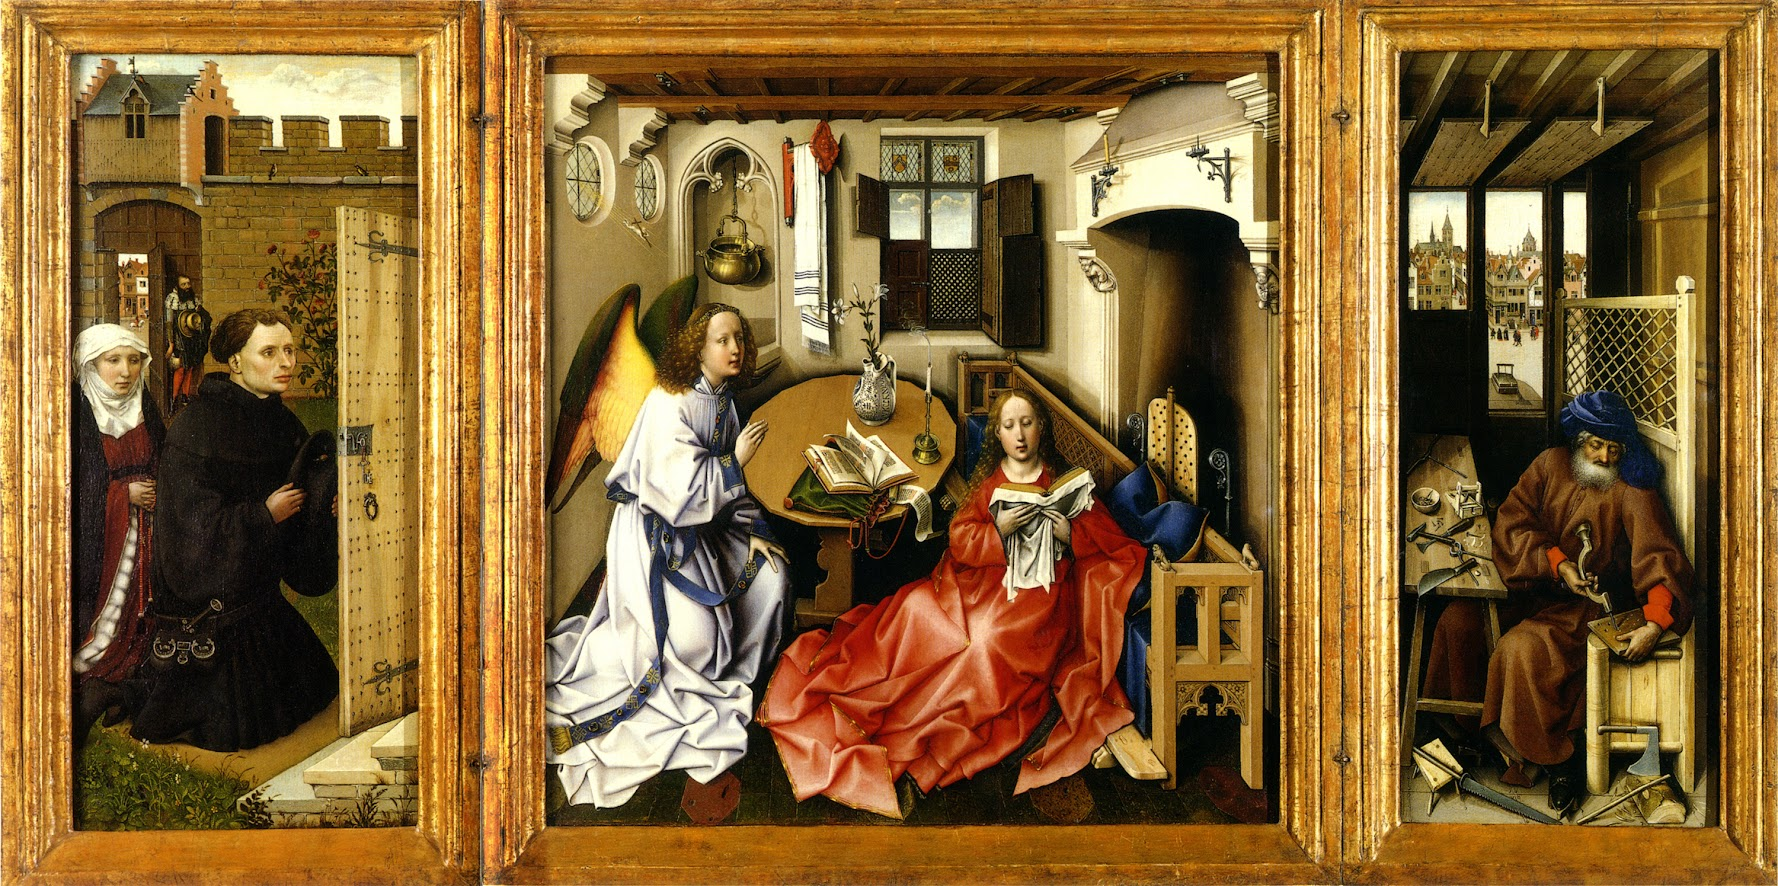 Article on the Merode Altarpiece